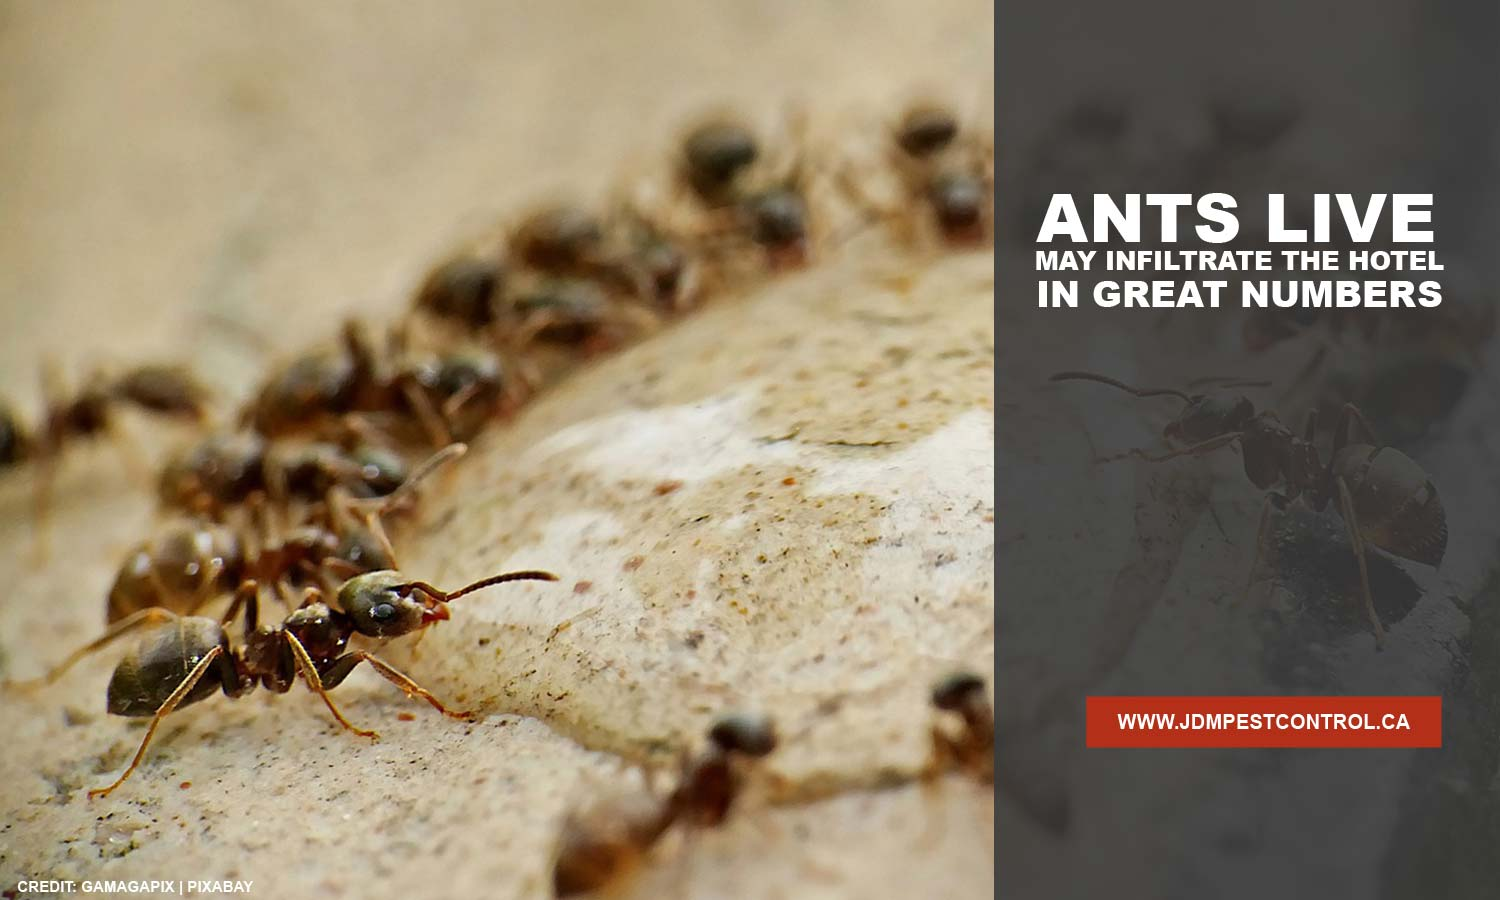 Ants live may infiltrate the hotel in great numbers